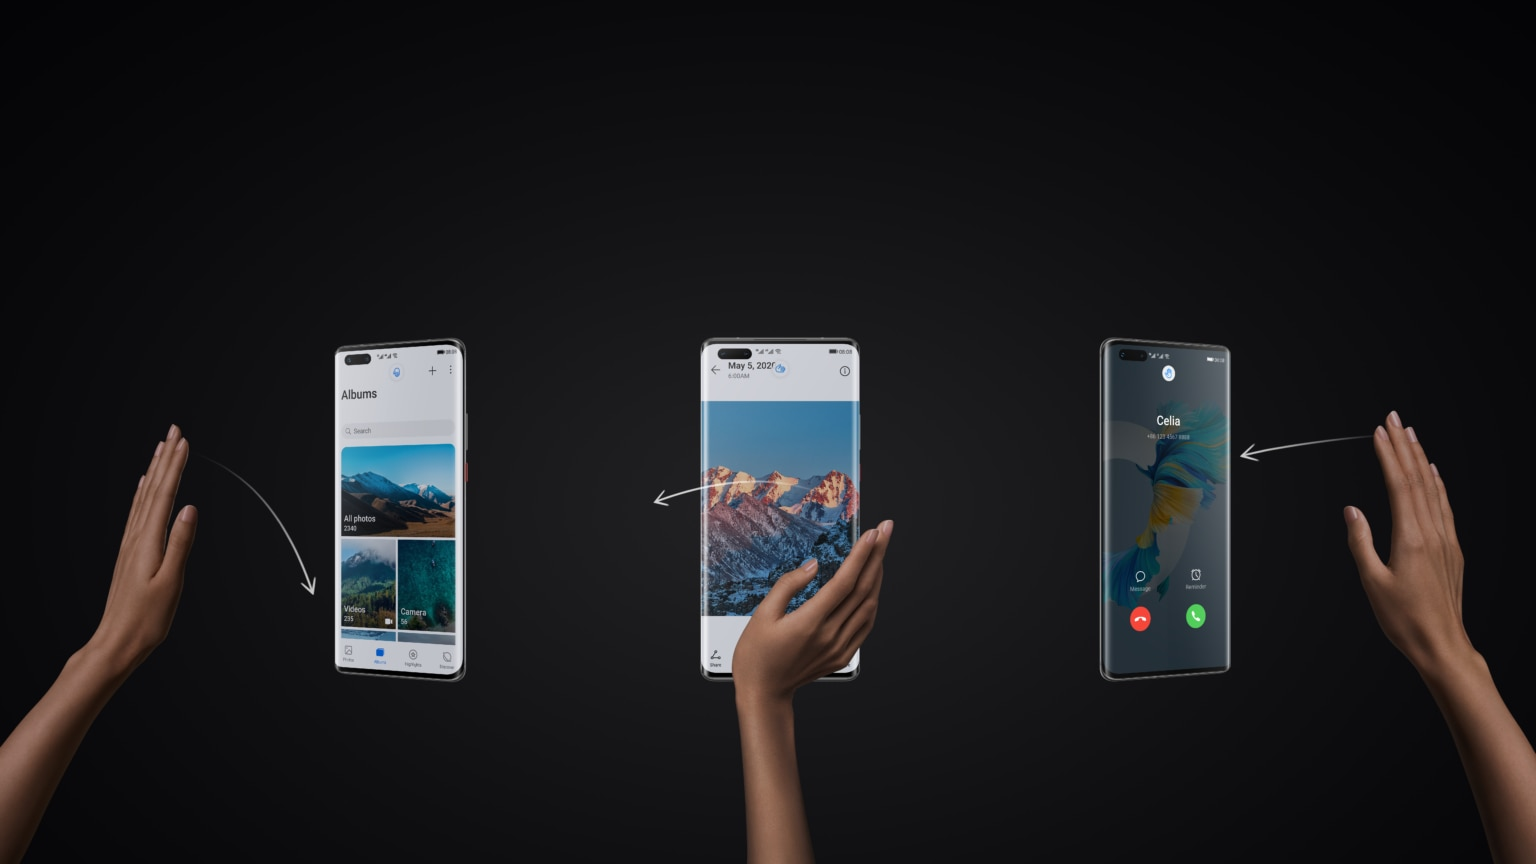 huawei-mate-40-pro_gesture-1536x864.png